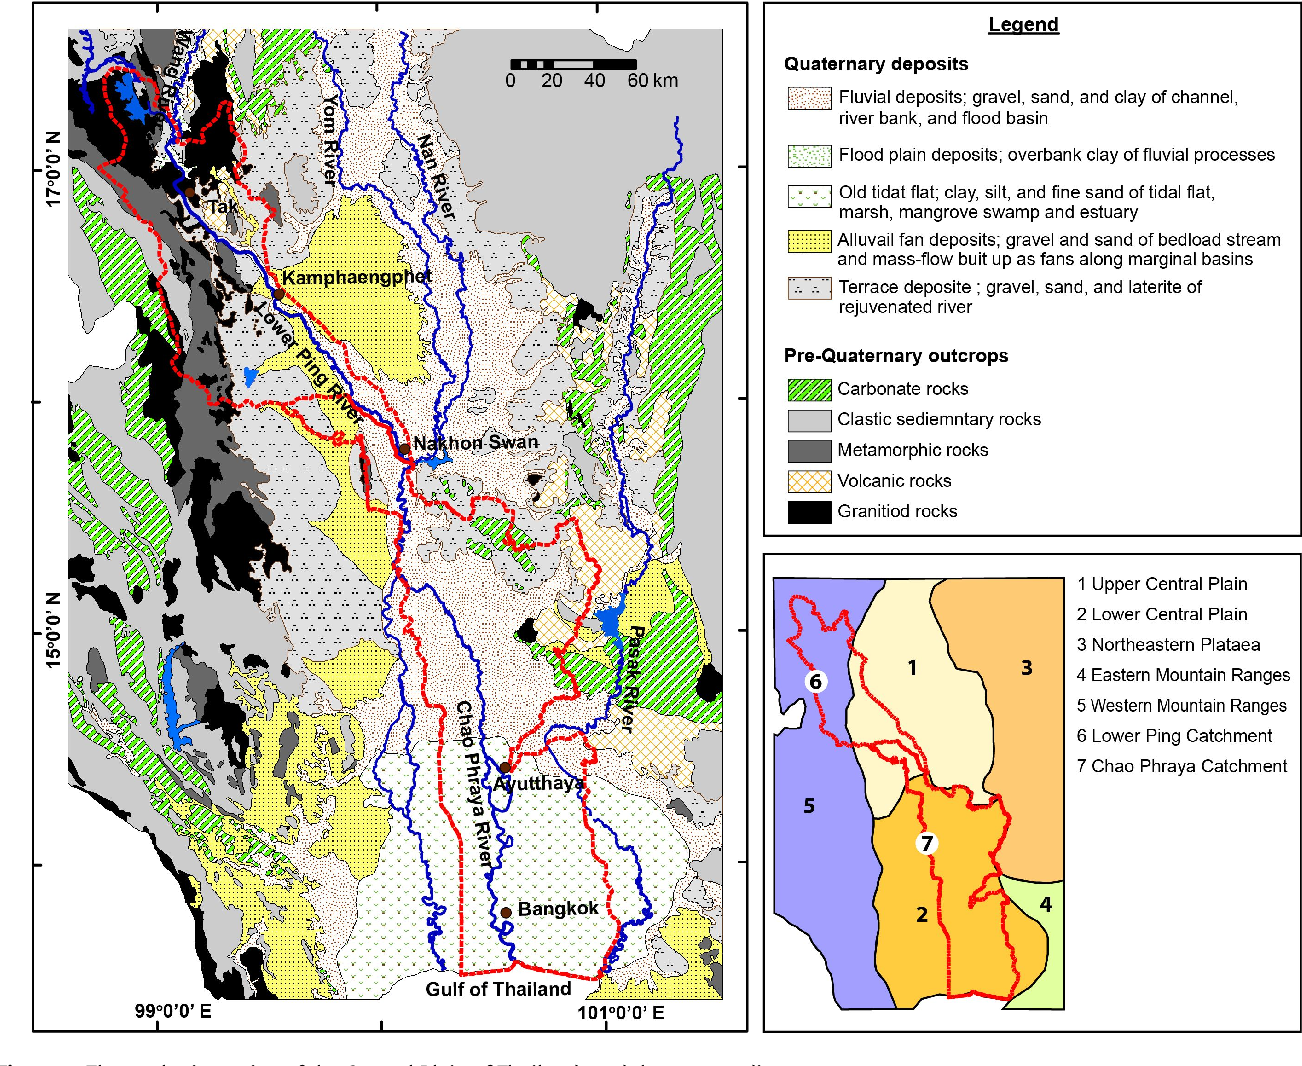 Morphological Changes of the Lower Ping and Chao Phraya Rivers